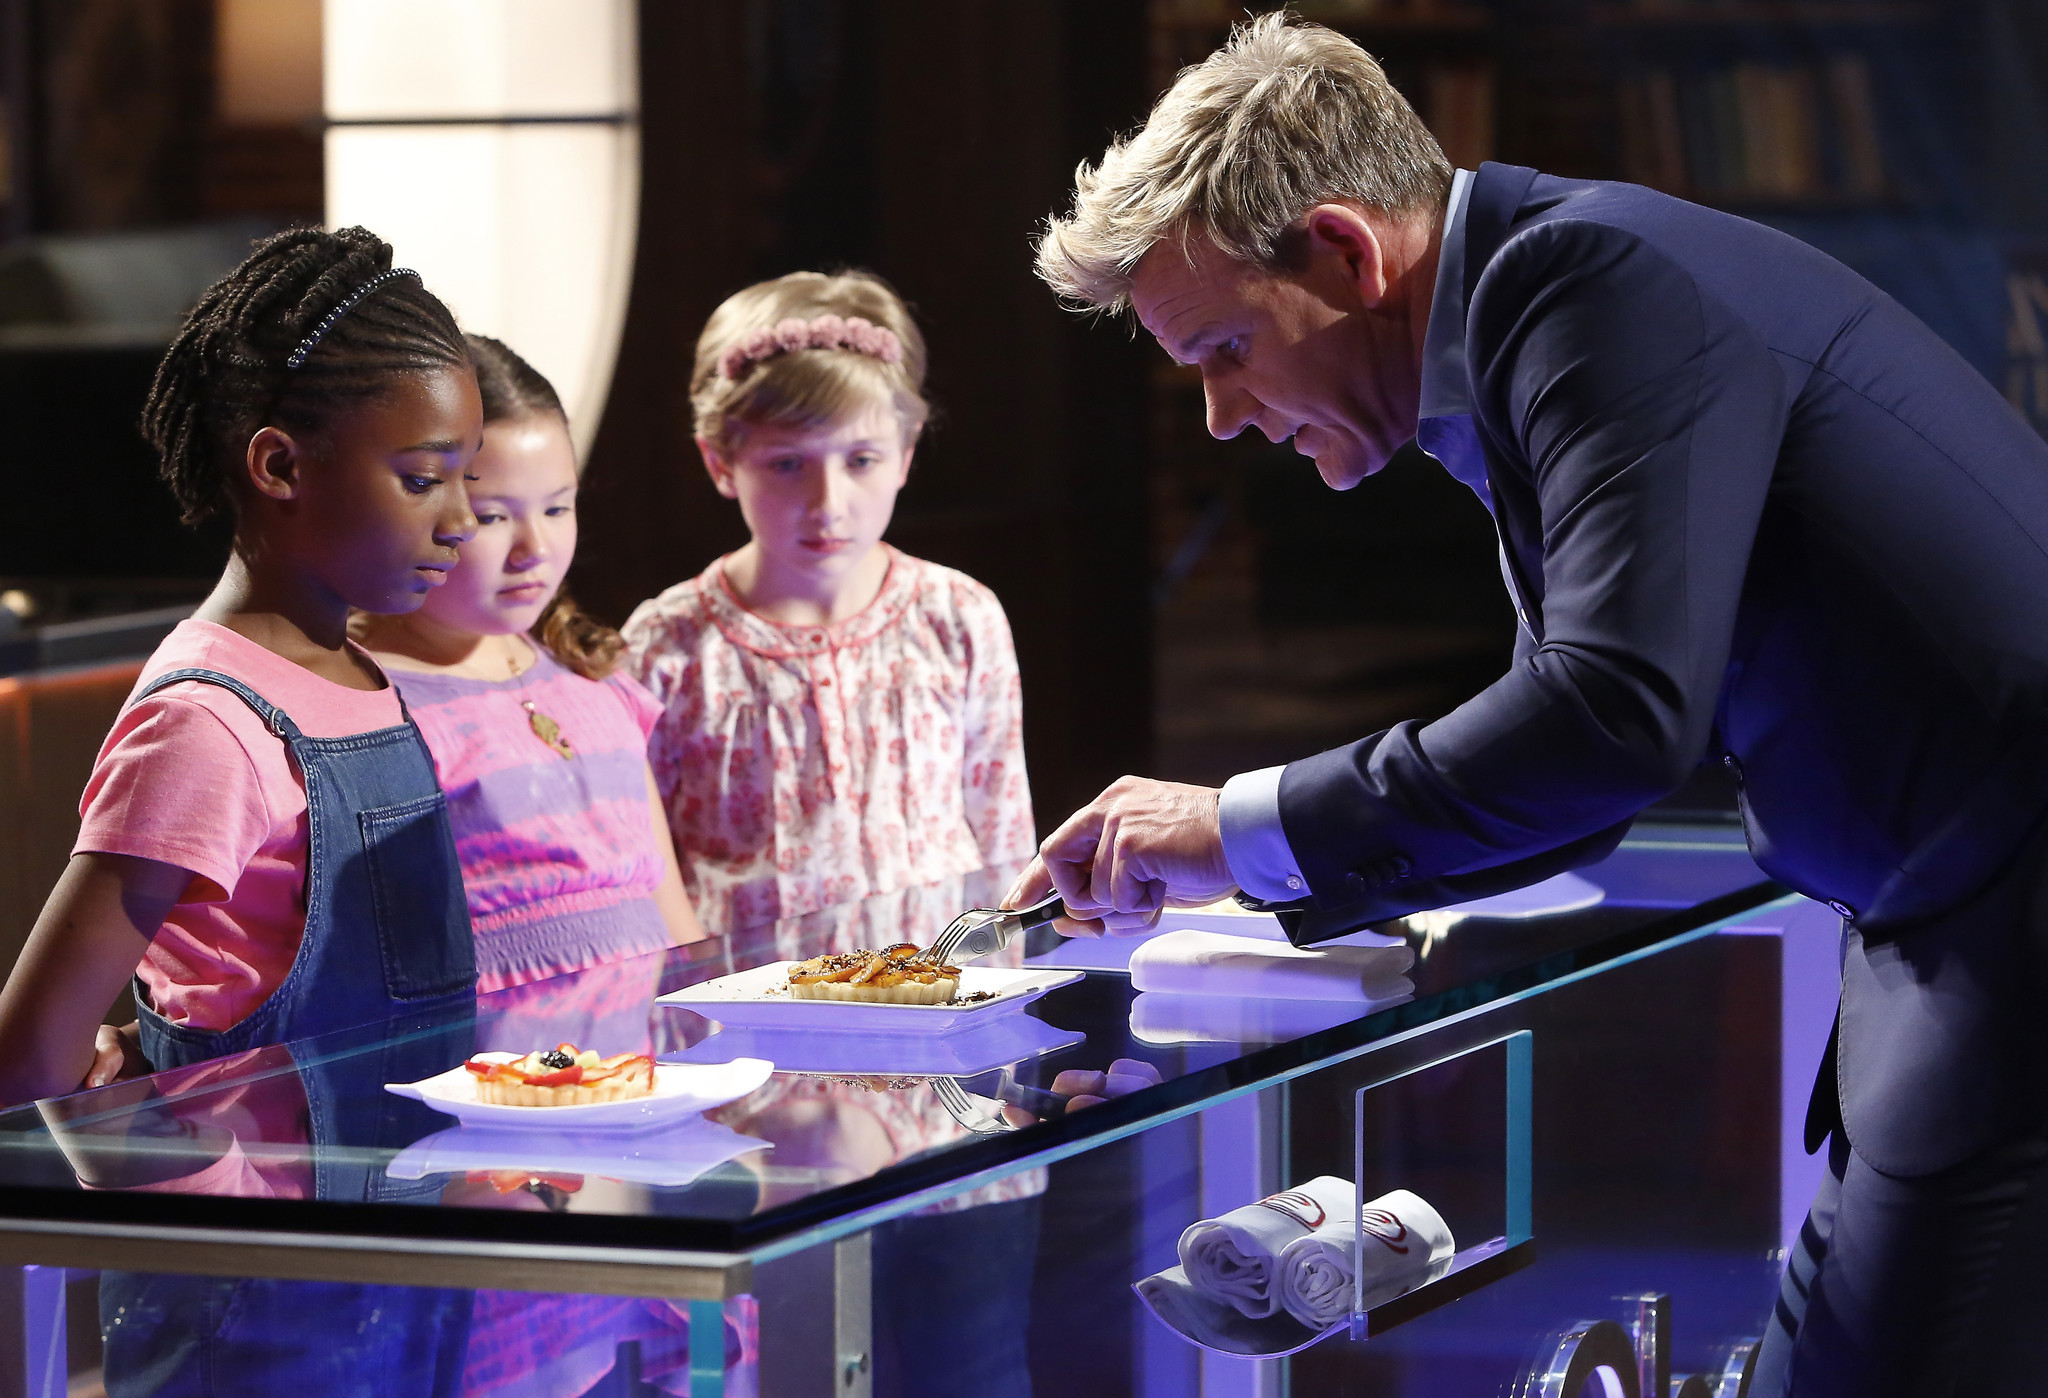 Meet the 5 Chicagoarea kids competing on MasterChef